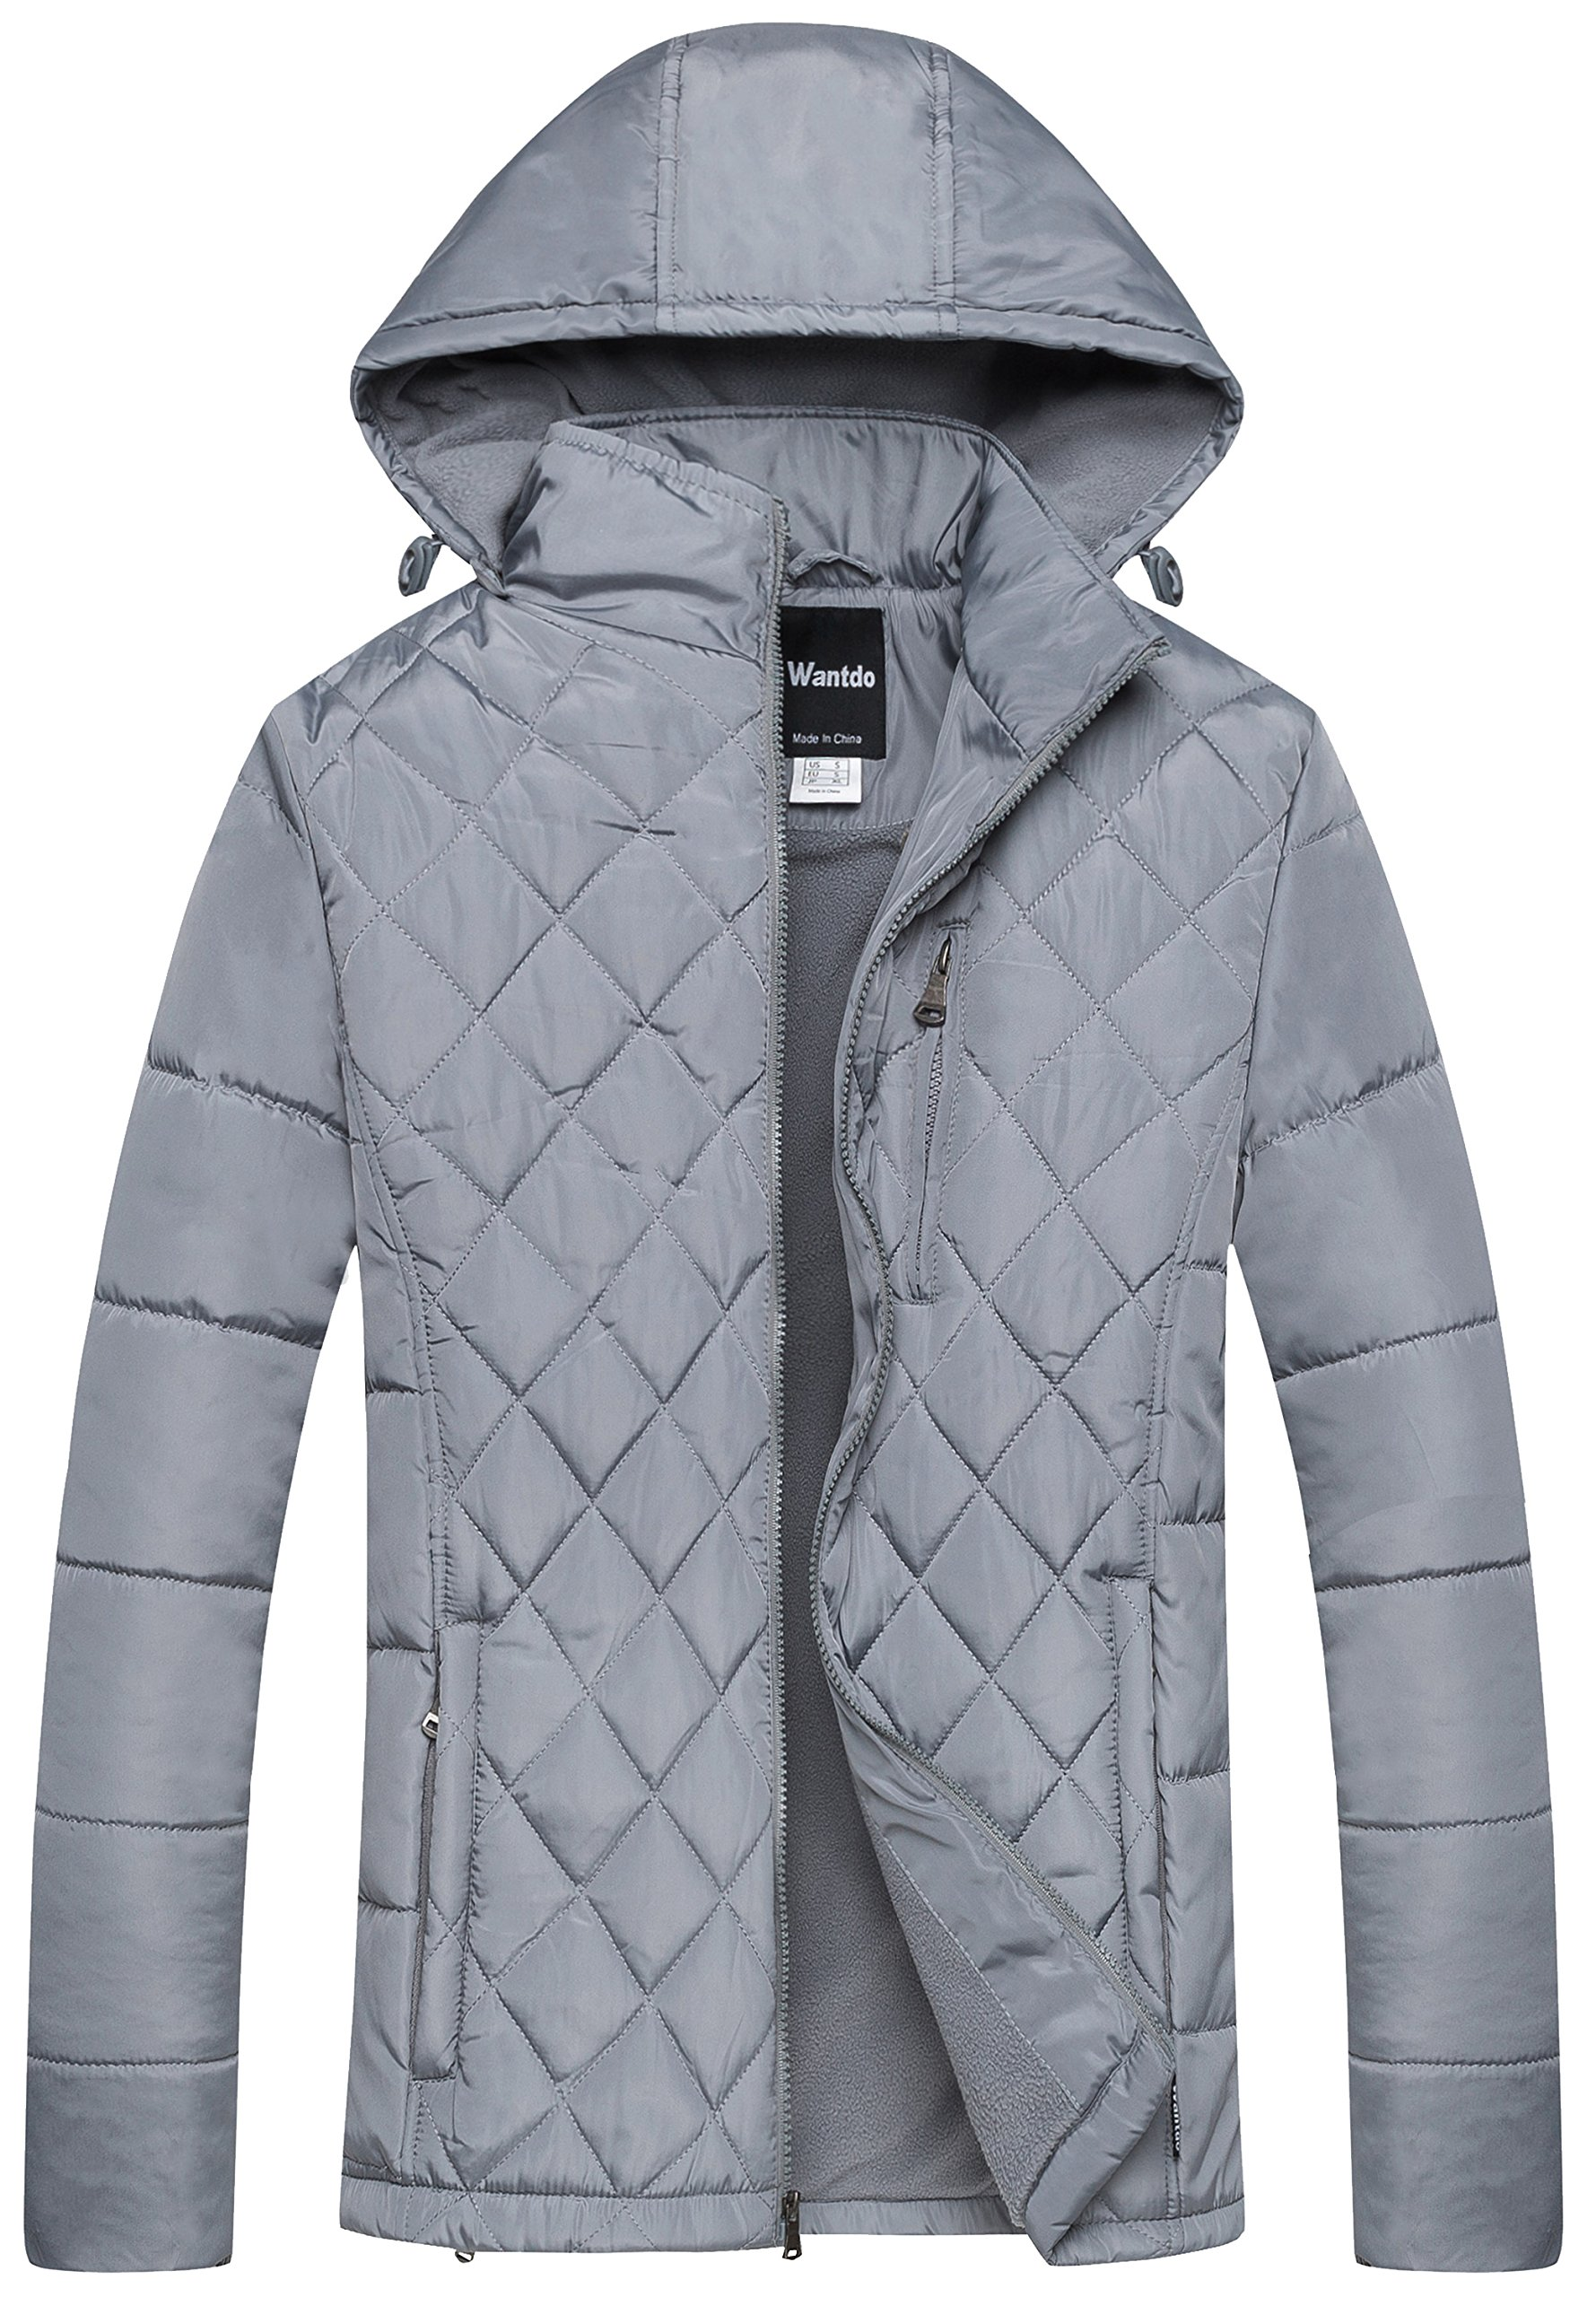 Wantdo Men's Hooded Puffer Coat Warm Windbreaker Outdoor Diamond Quilting Jacket Grey Large by Wantdo